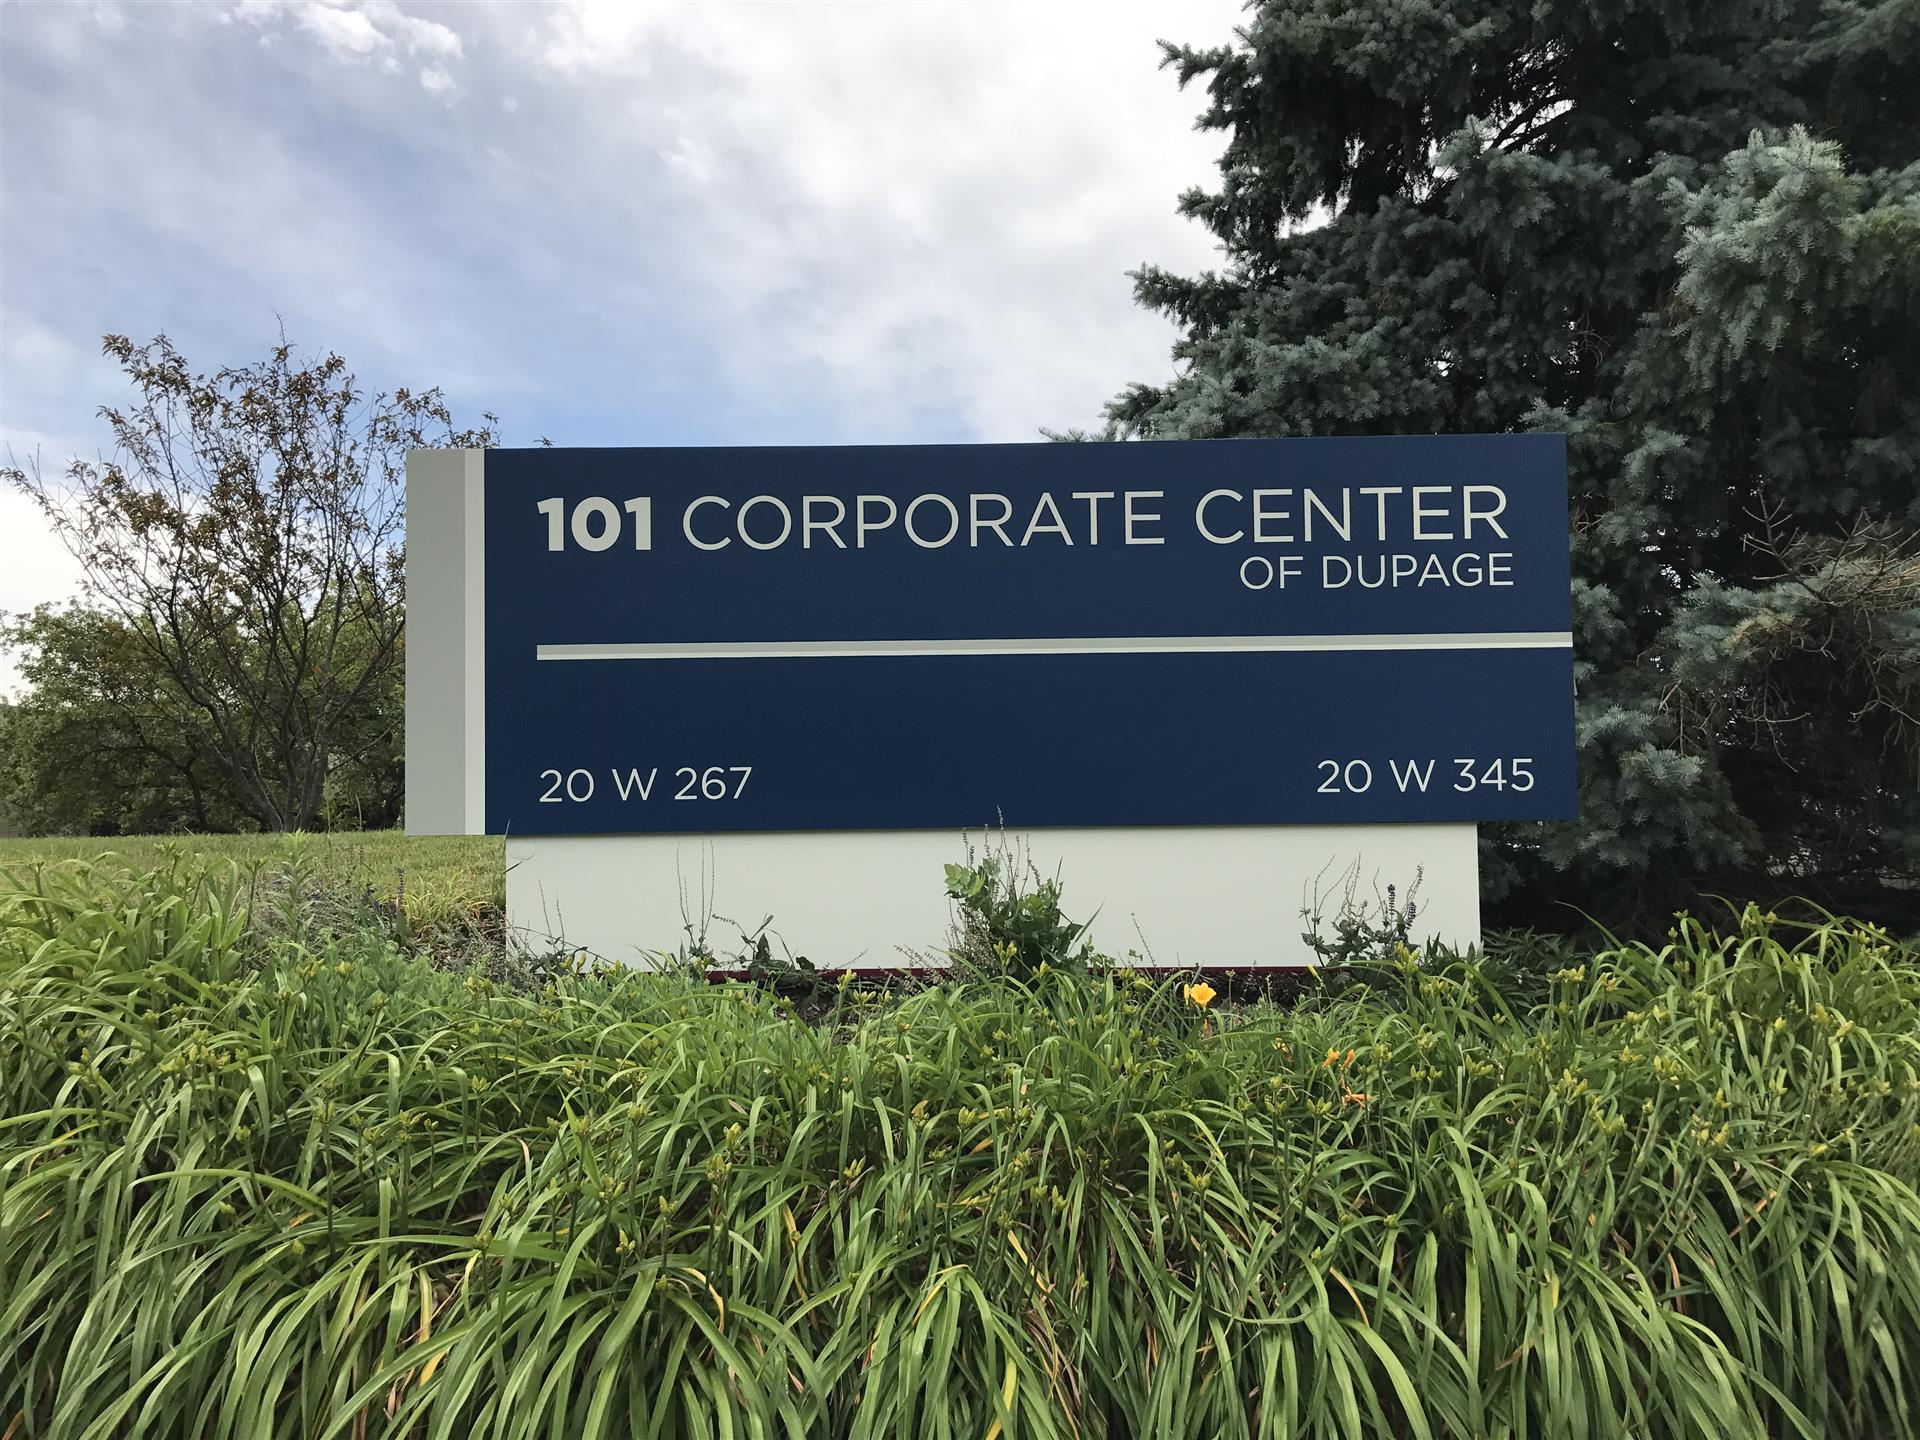 101 Corporate Center of DuPage Outdoor Business Sign